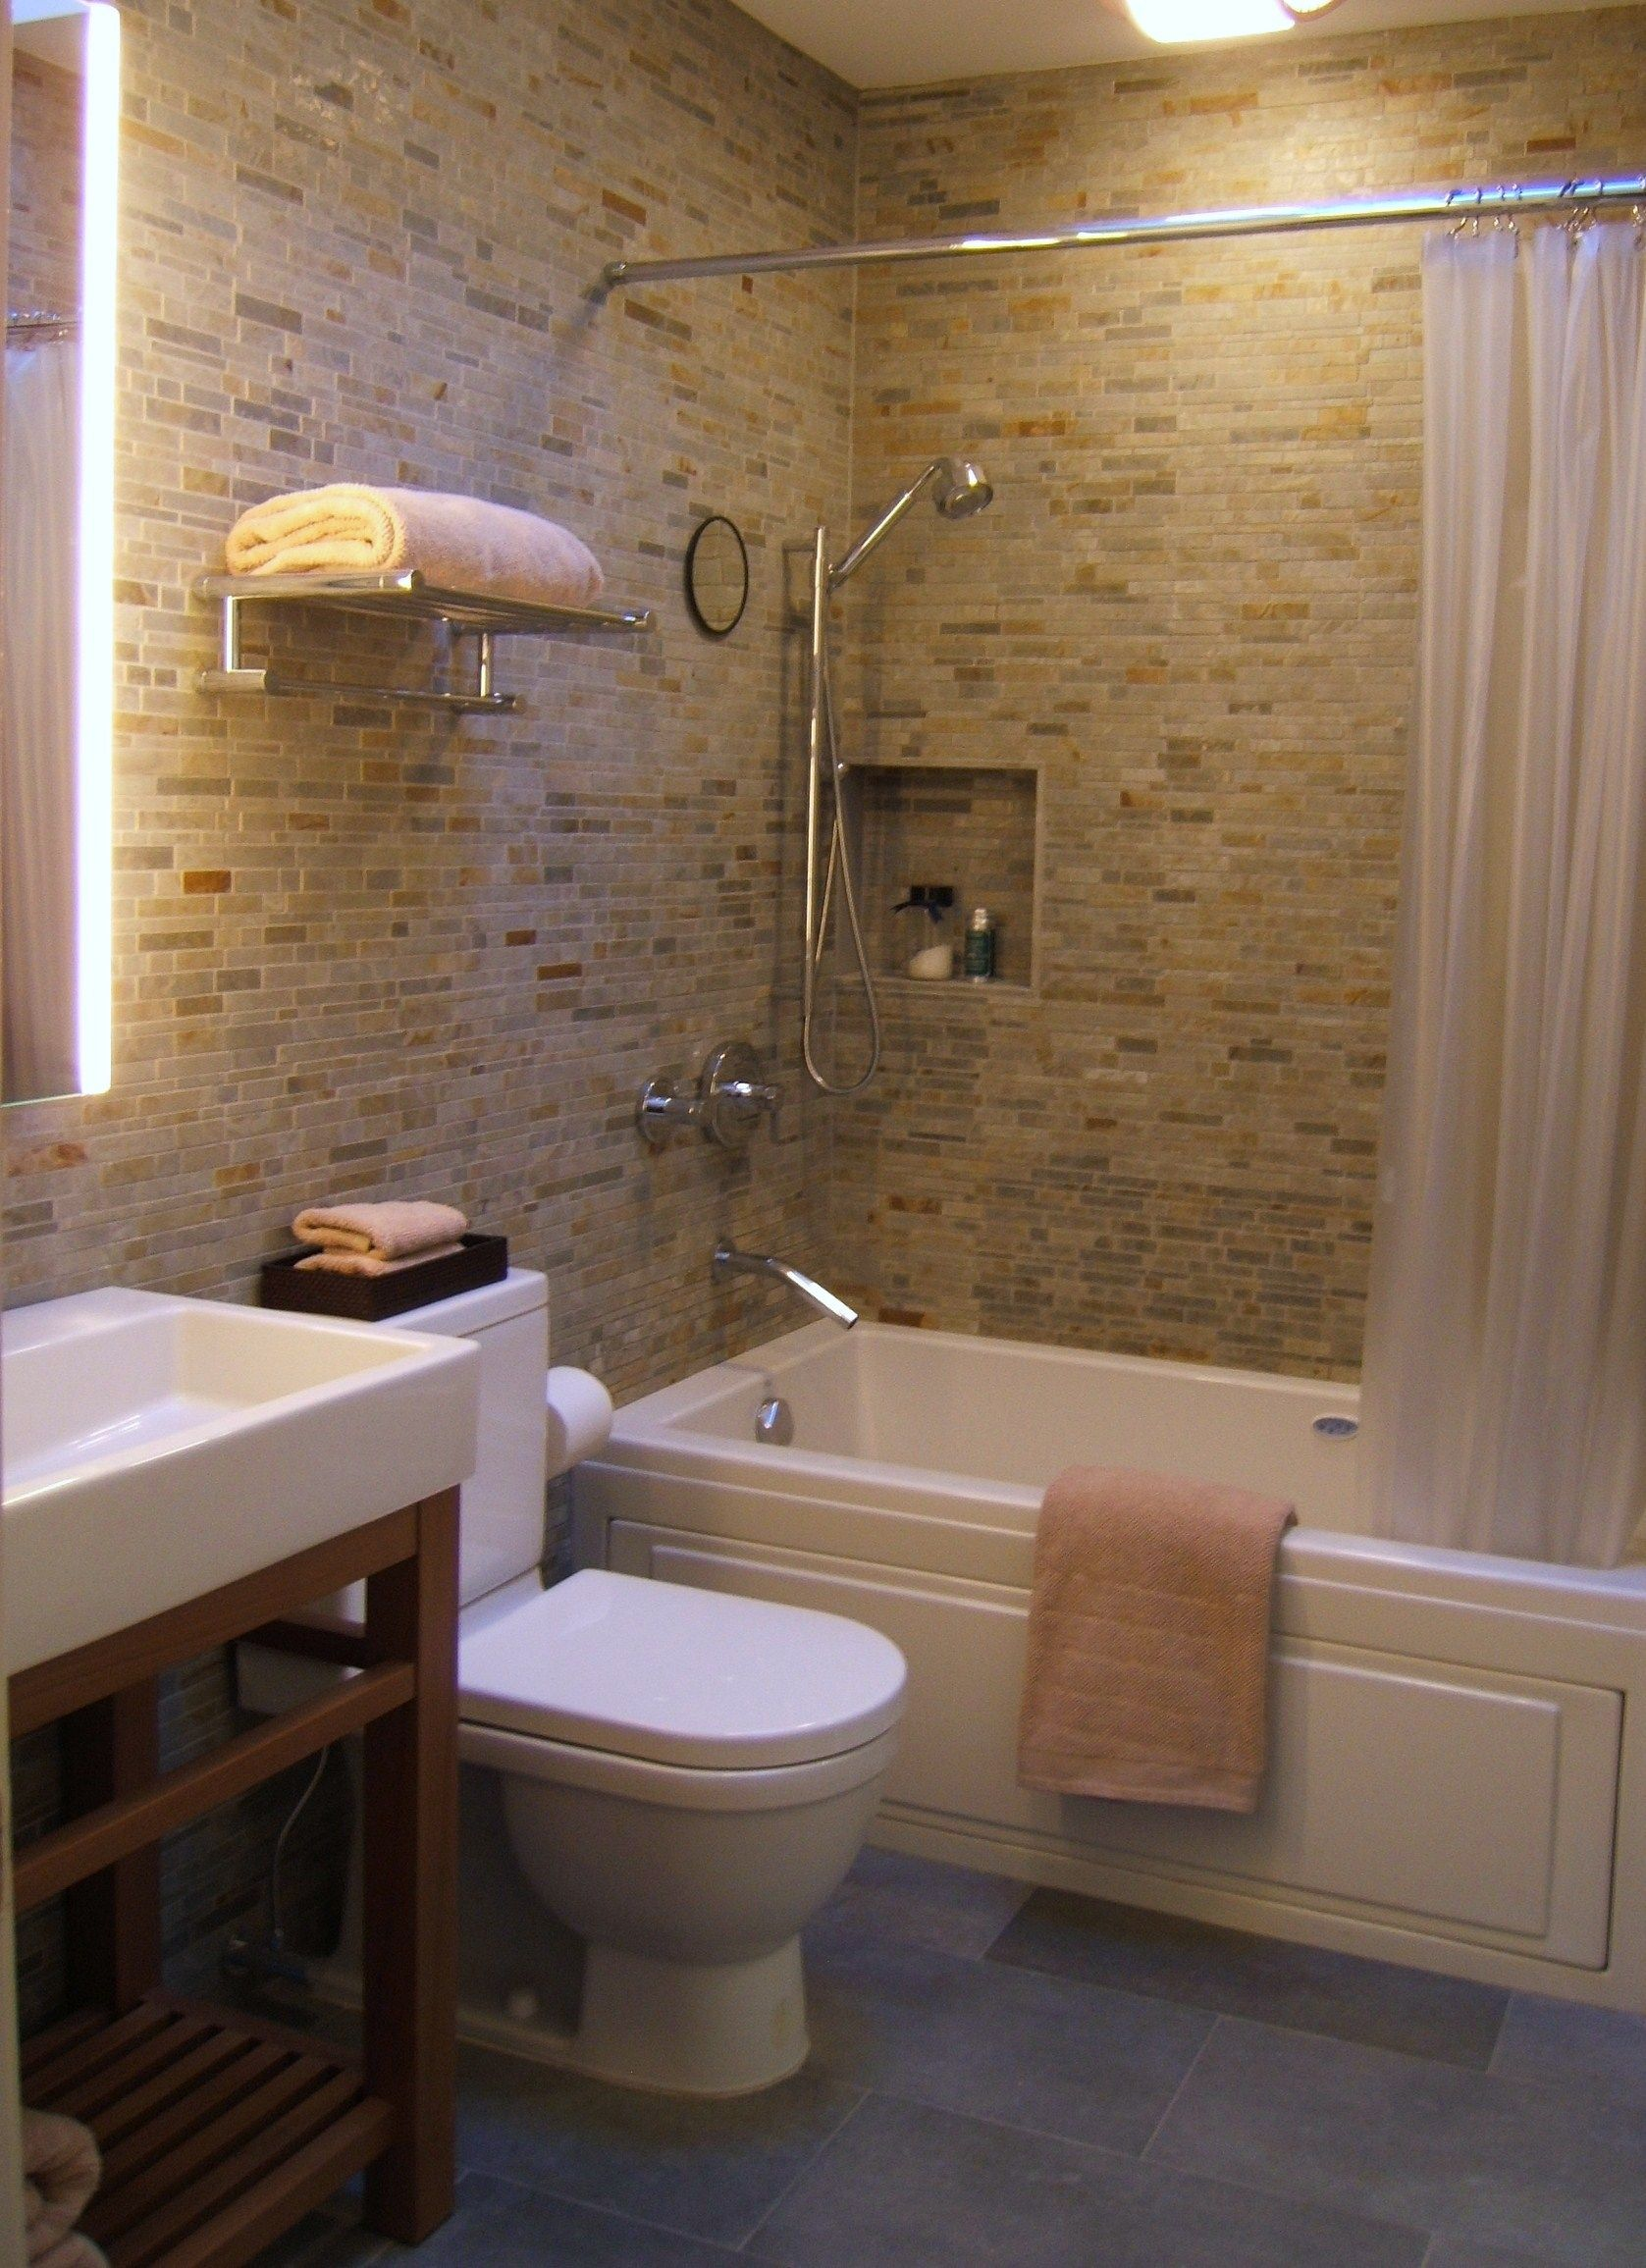 Small bathroom designs south africa small bath Tiny bathroom